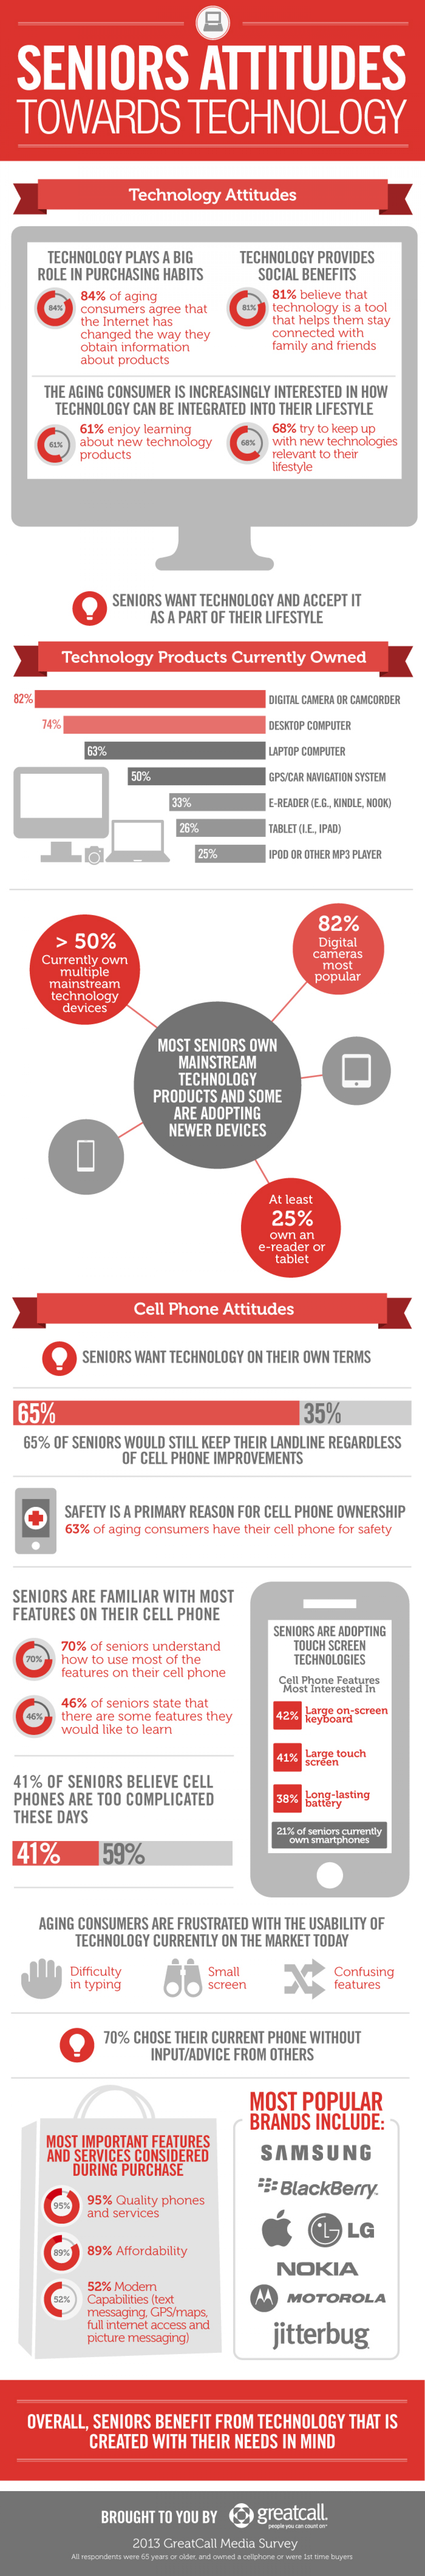 Seniors' Attitudes Towards Technology Infographic